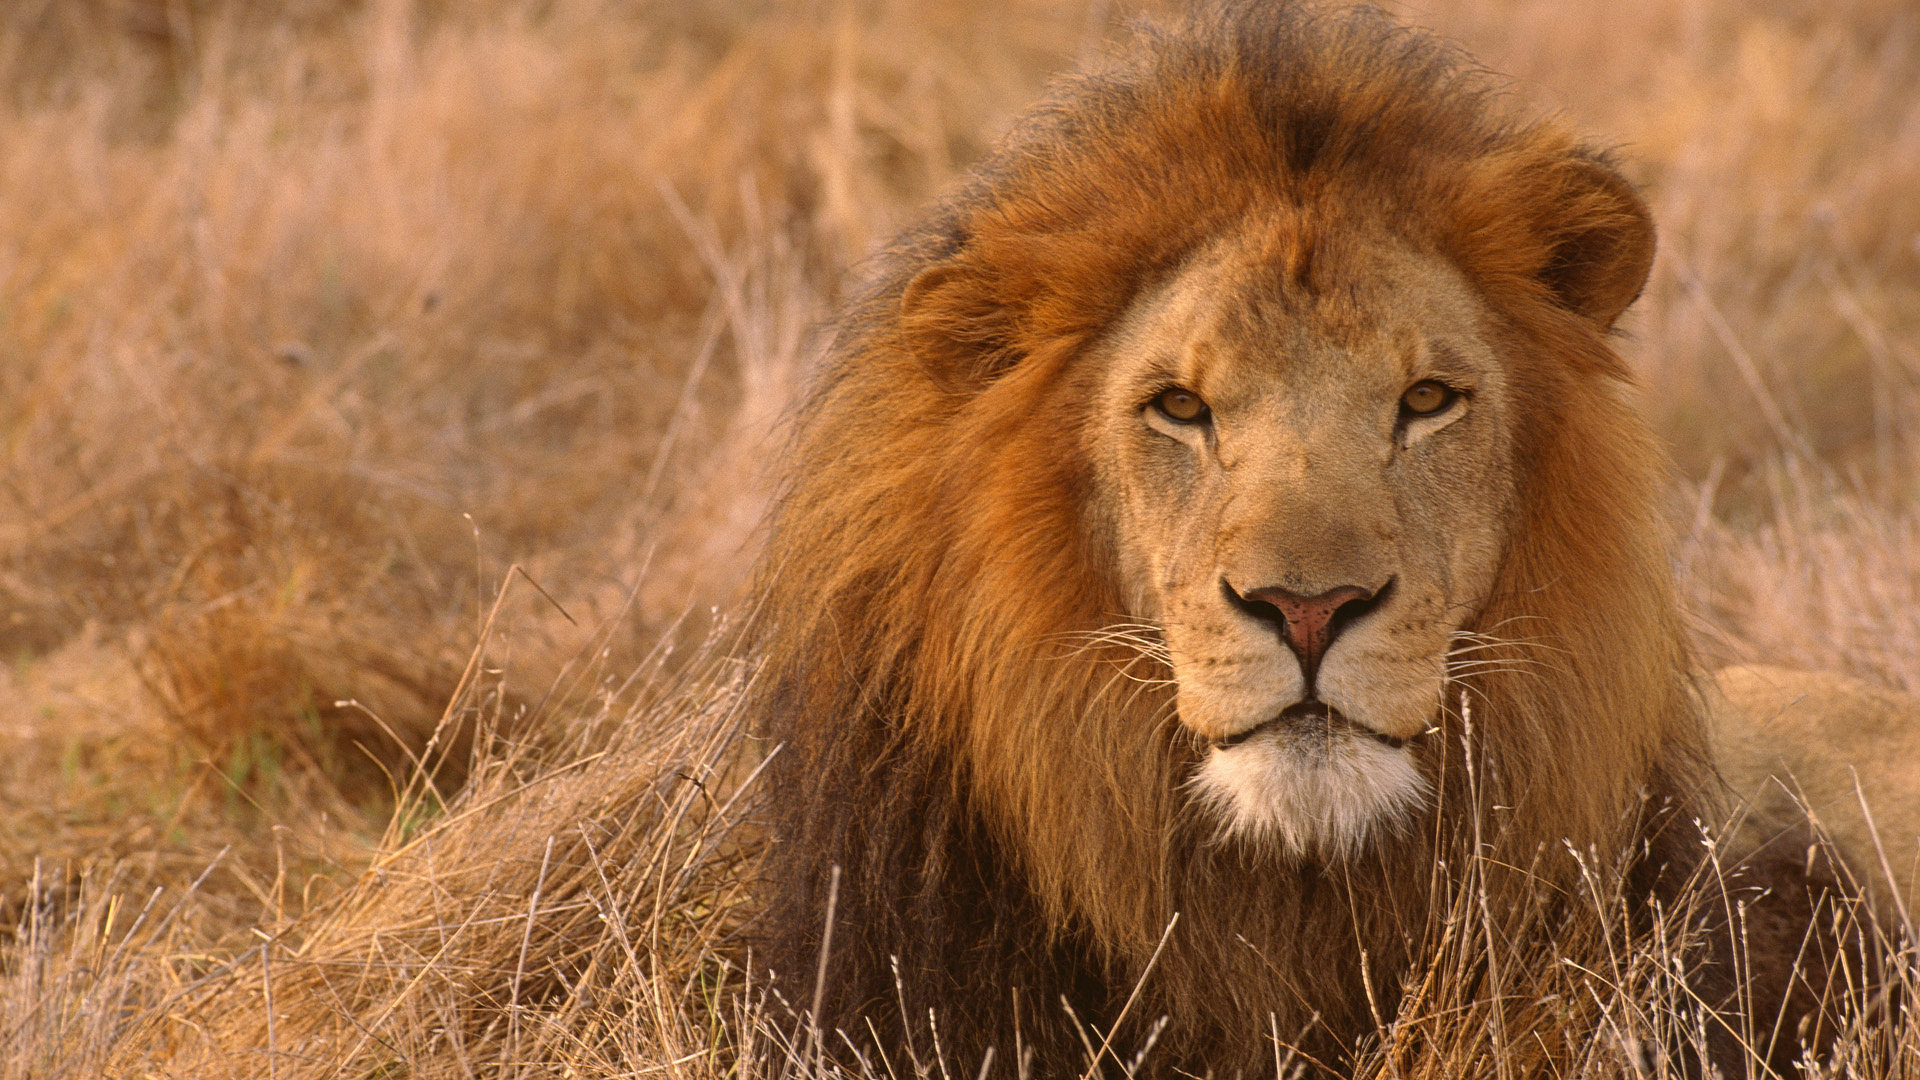 lion full hd wallpaper and background image 1920x1080